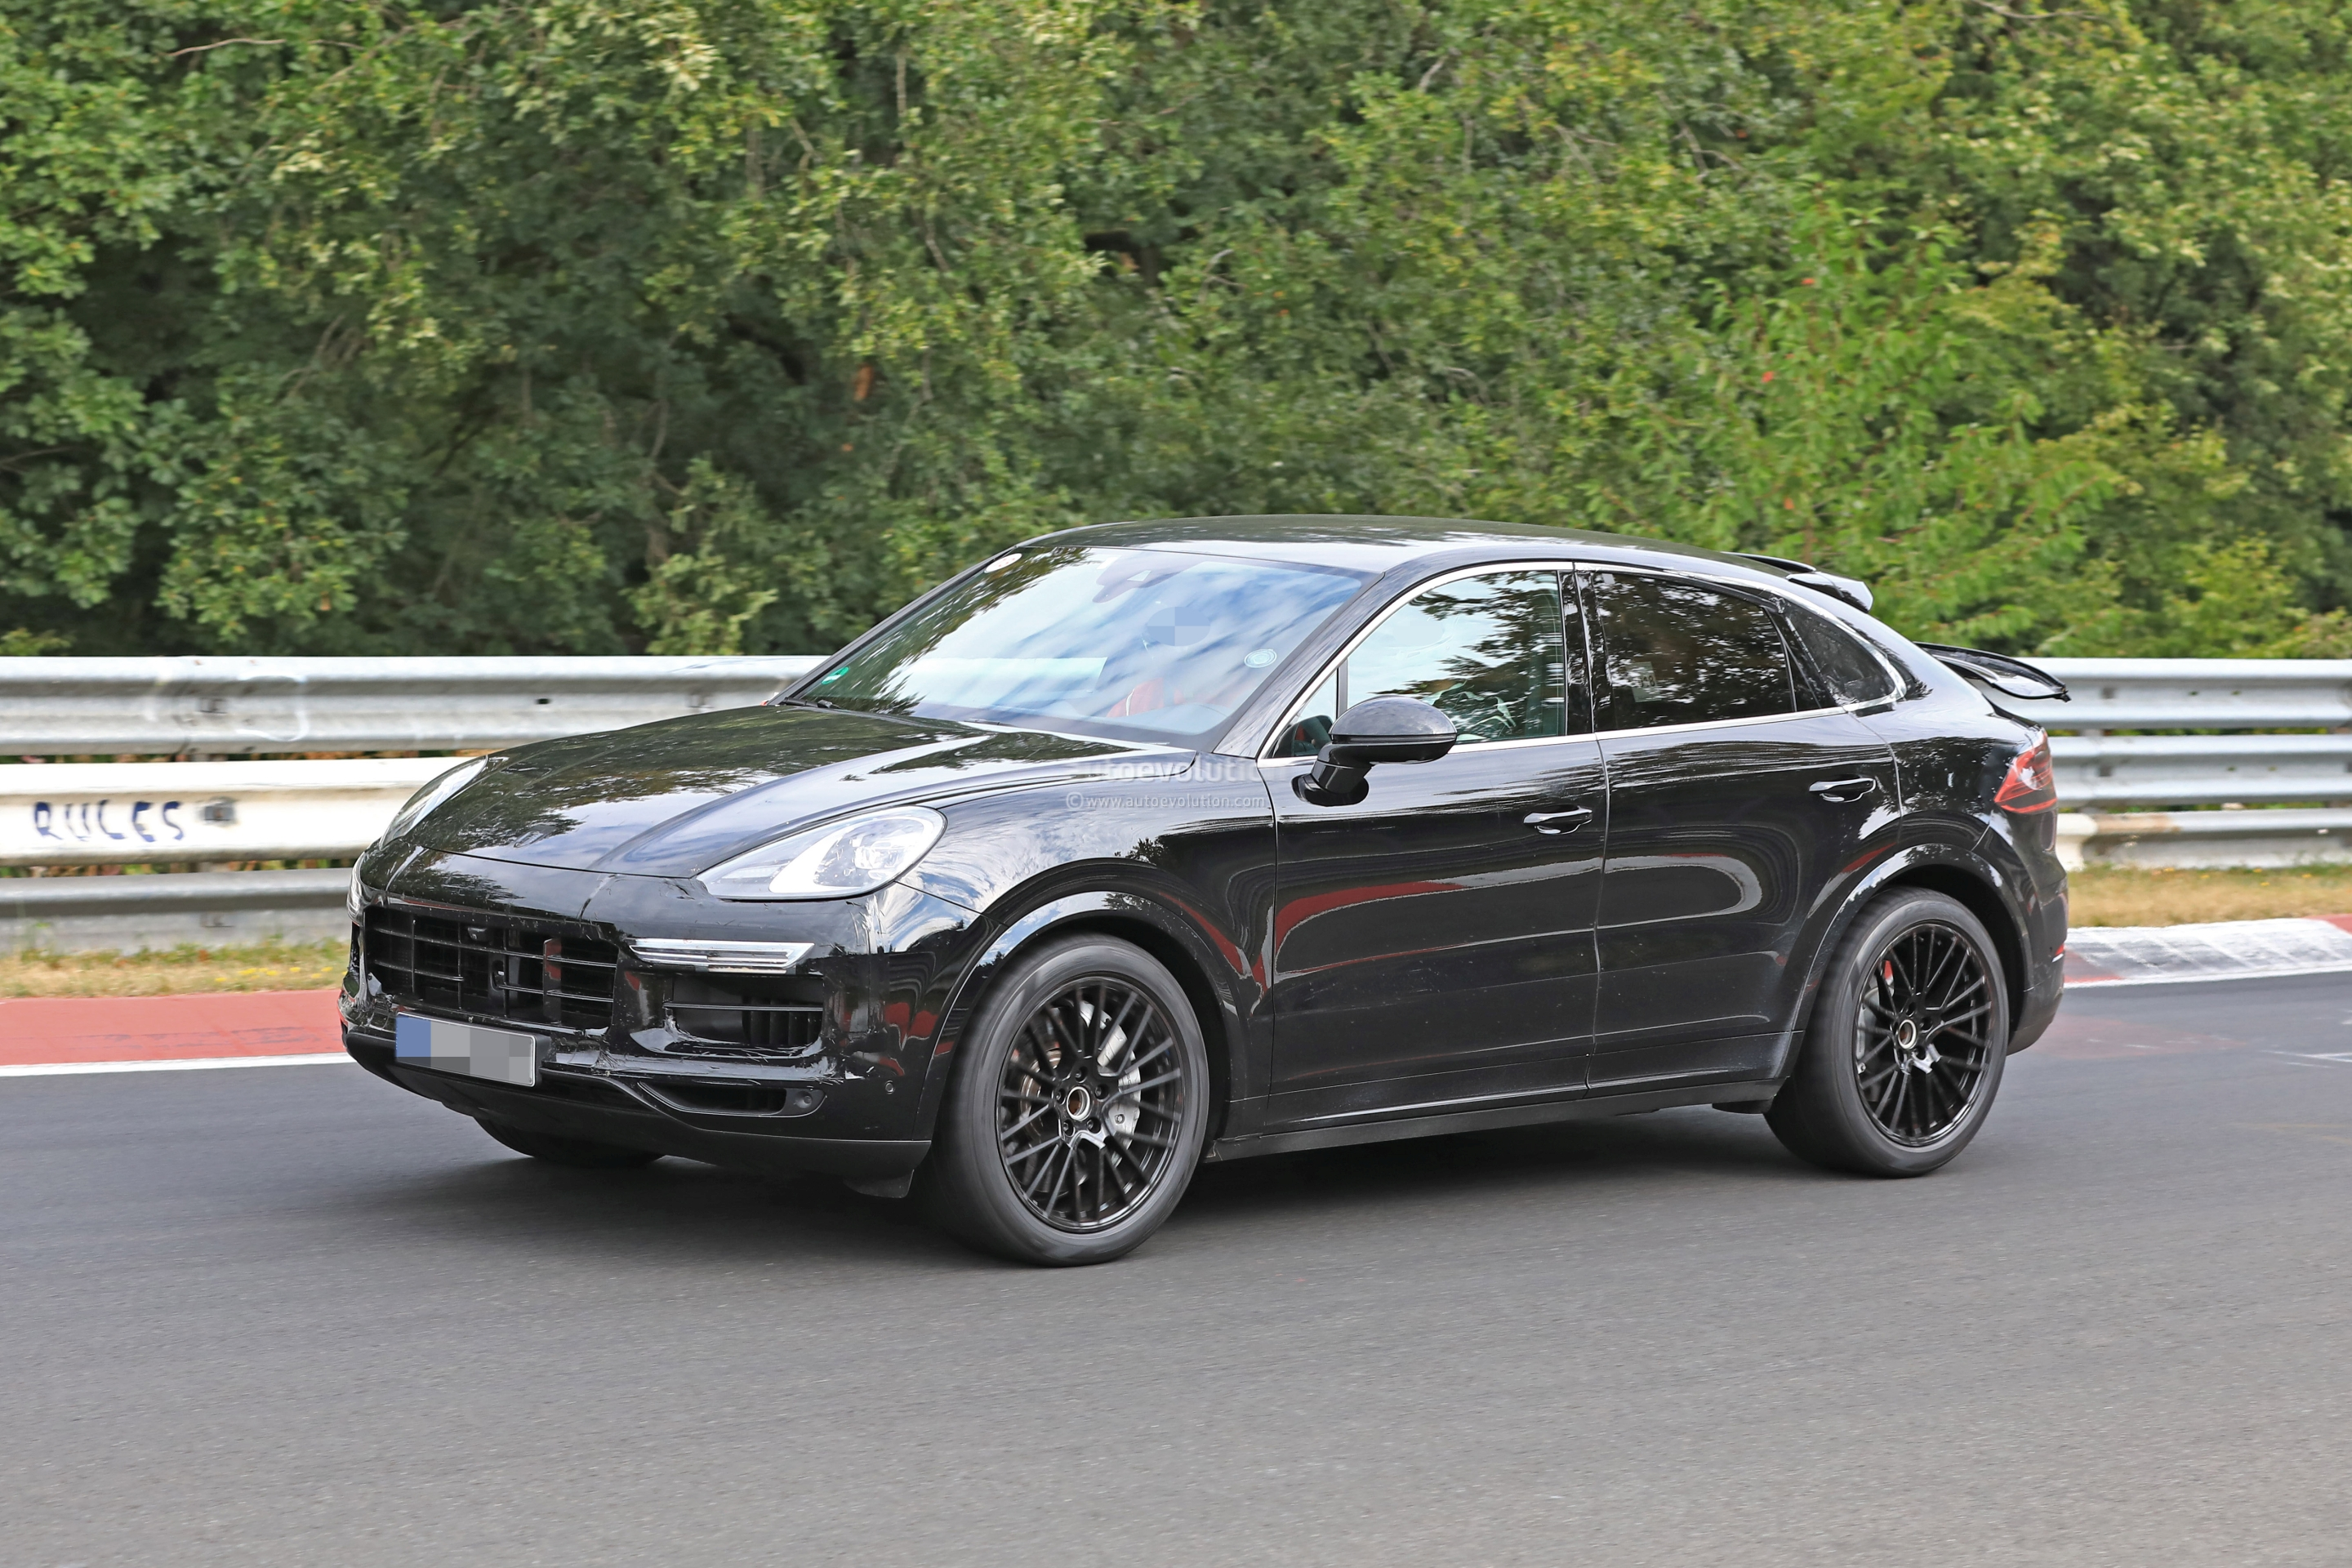 94 Best 2020 Porsche Cayenne Turbo S Redesign and Review